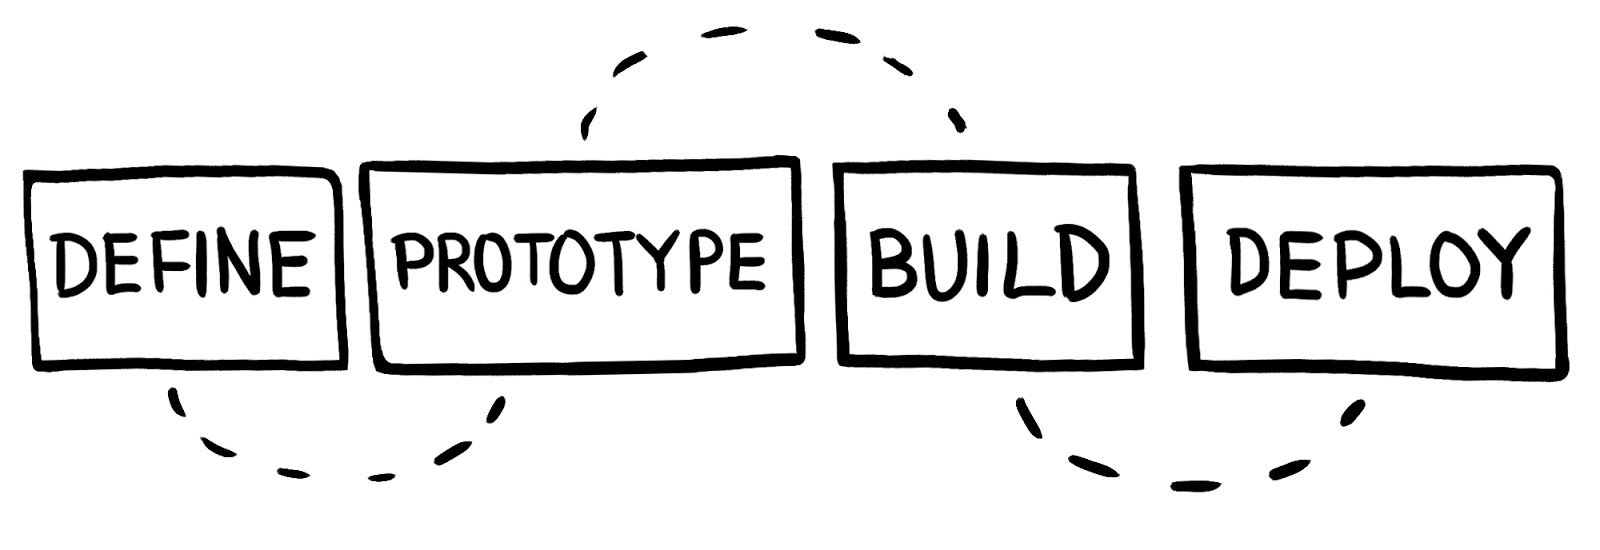 dashboard design process: Define>Prototype>Build>Deploy